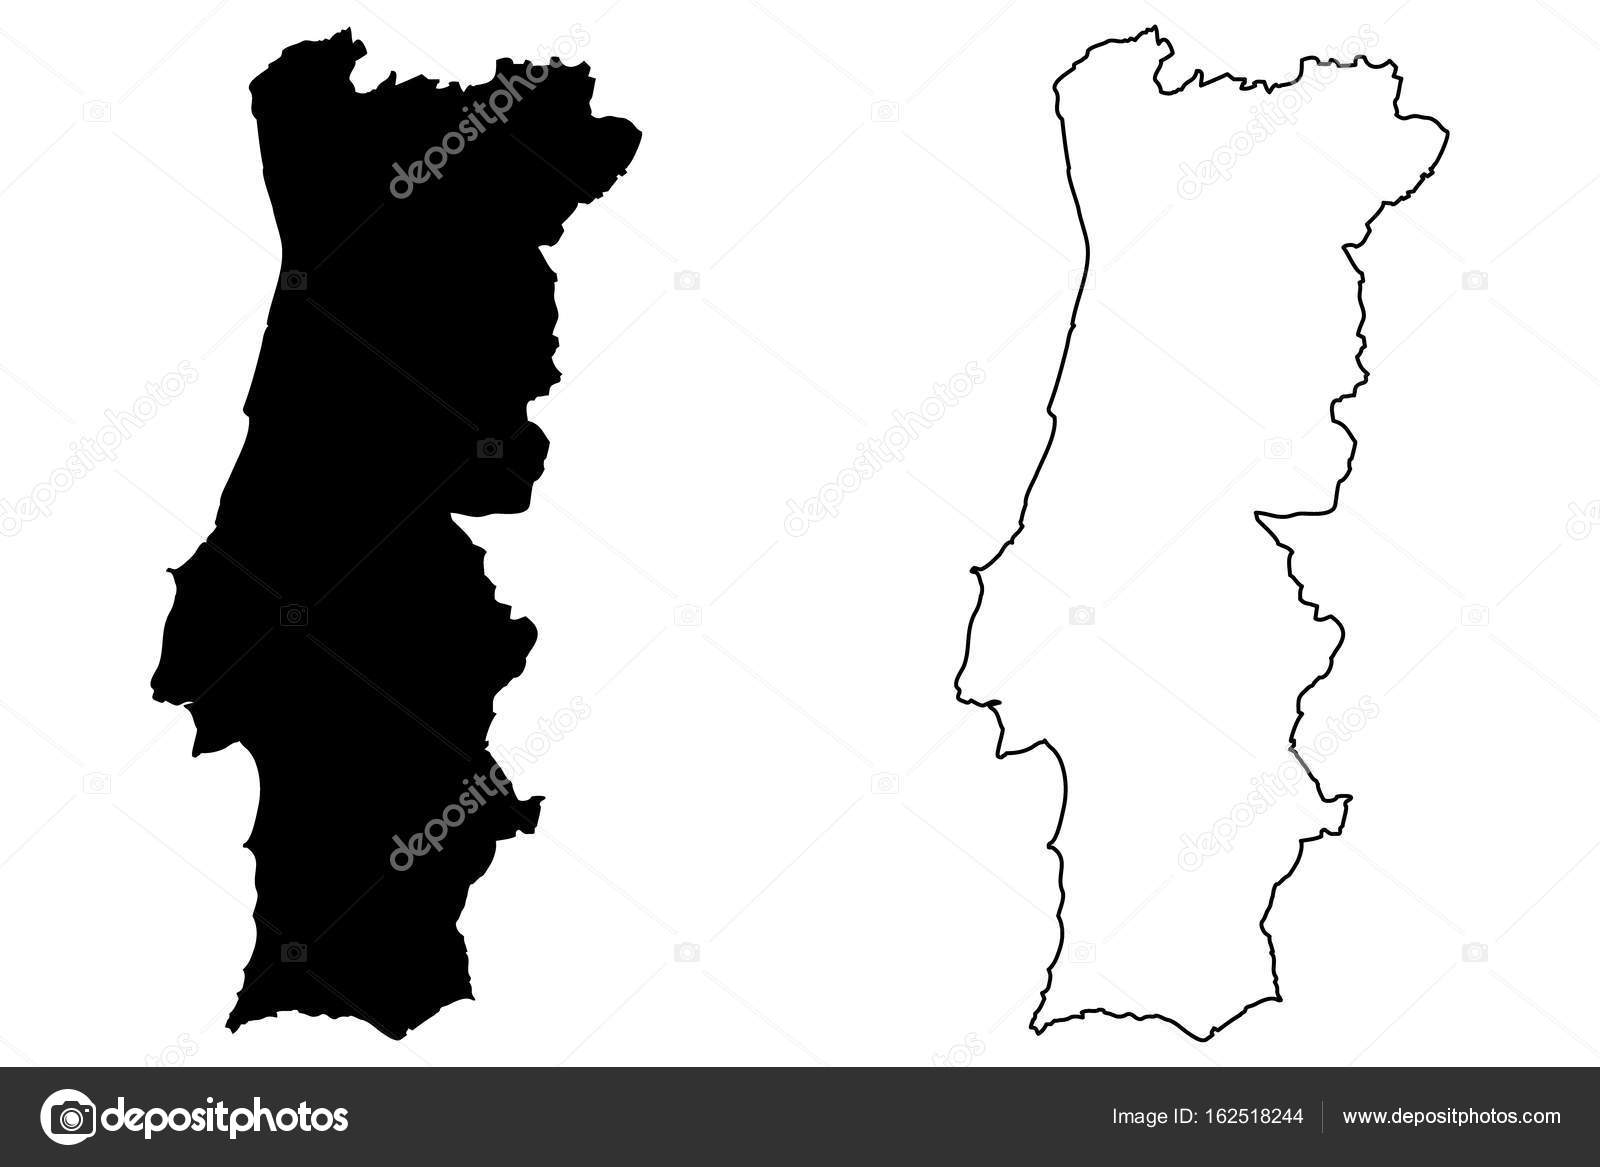 portugal mapa vector Portugal map vector — Stock Vector © Danler #162518244 portugal mapa vector